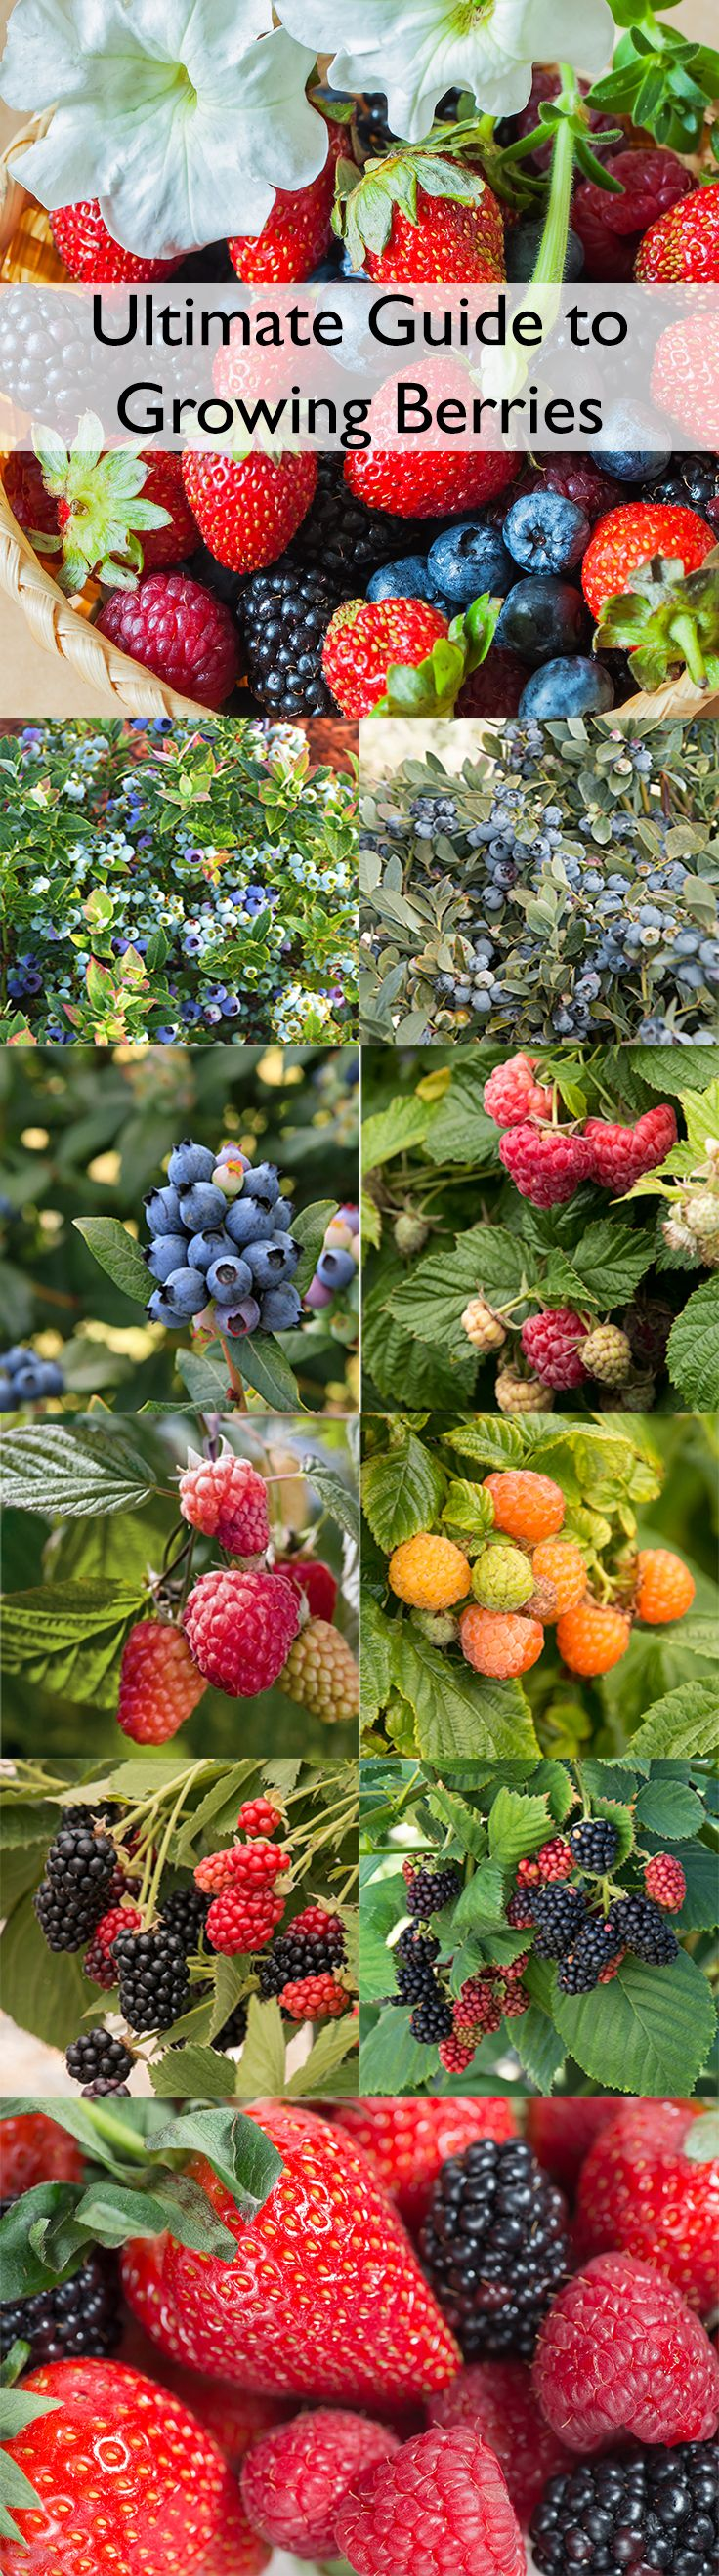 There has never been a better time to add perfectly-ripe, plump, tasty homegrown berries to your garden. New, more compact-sized plants and improved varieties have made growing berries even easier and more rewarding. We grow our berries in a special soil mix crafted especially for edibles, so your plants will flower and fruit more in their first year in your garden.